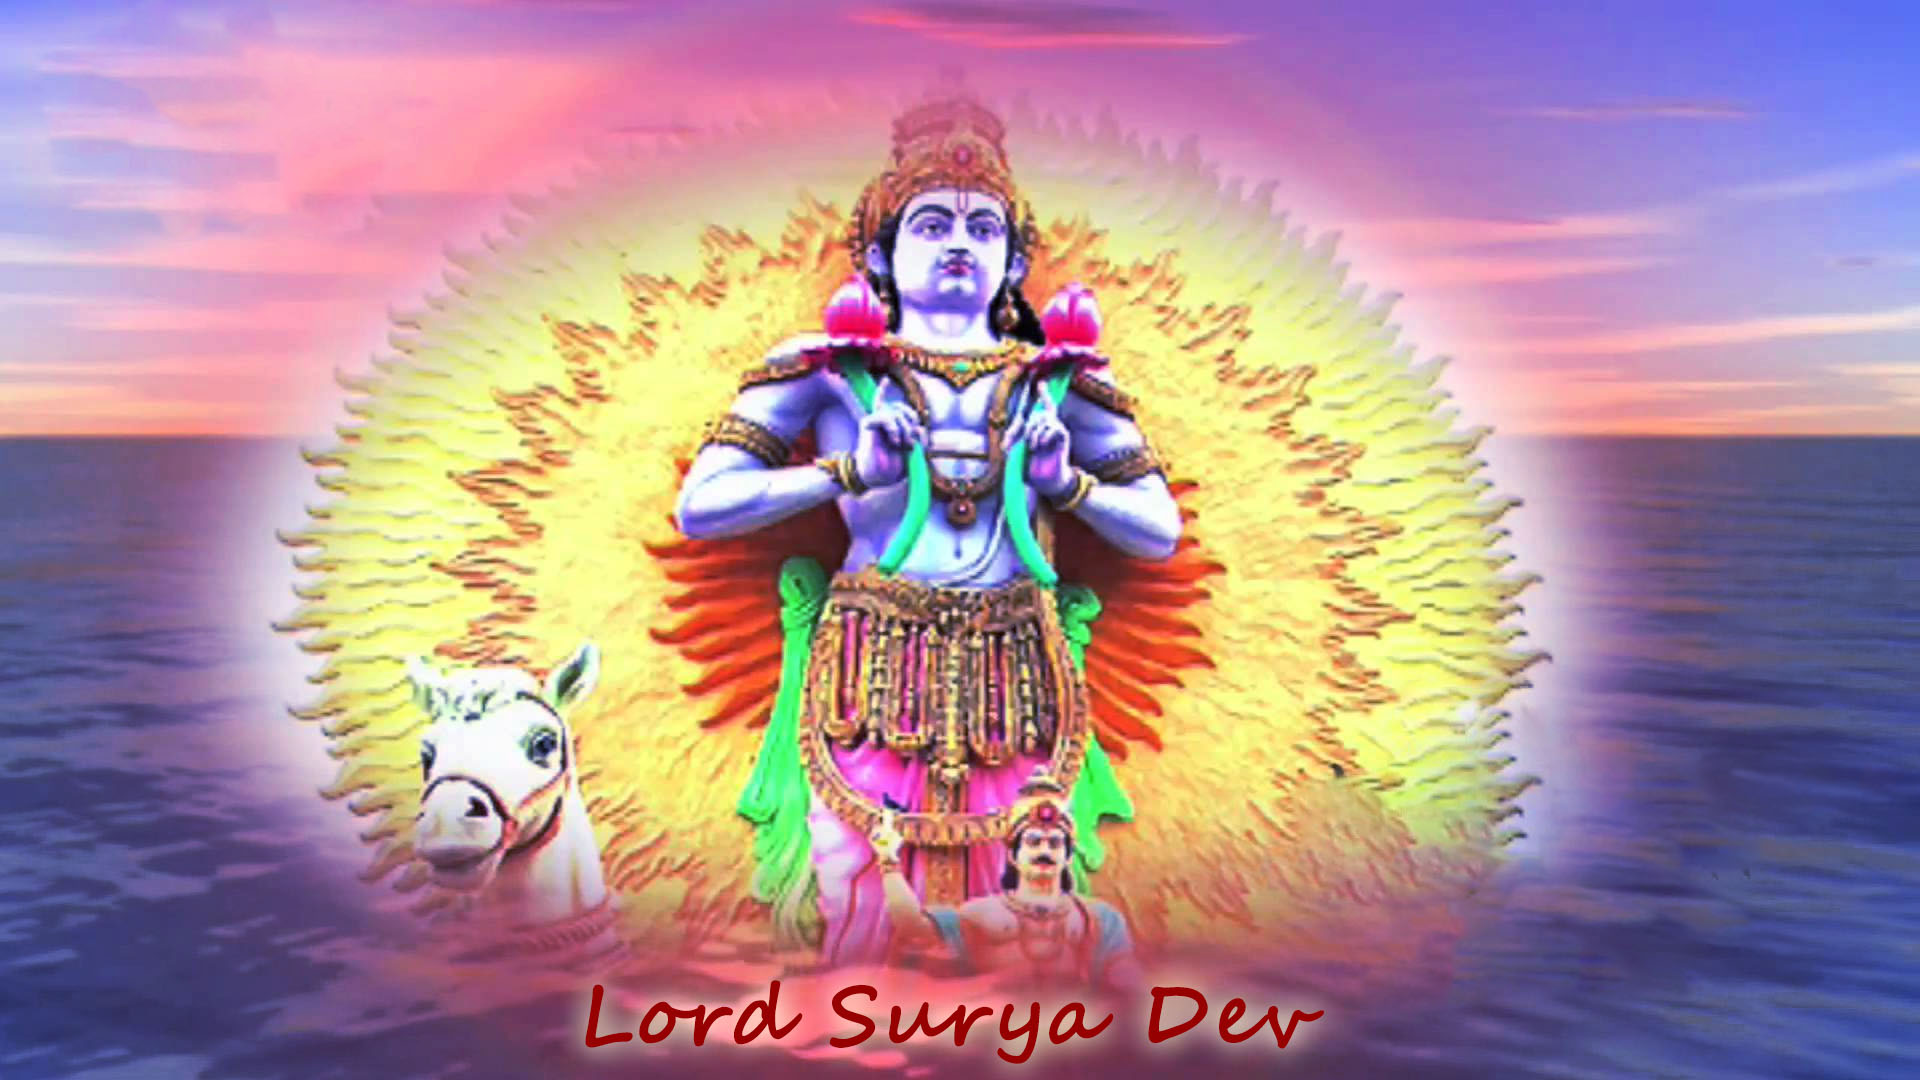 Lord Surya Bhagavan Hd Wallpapers